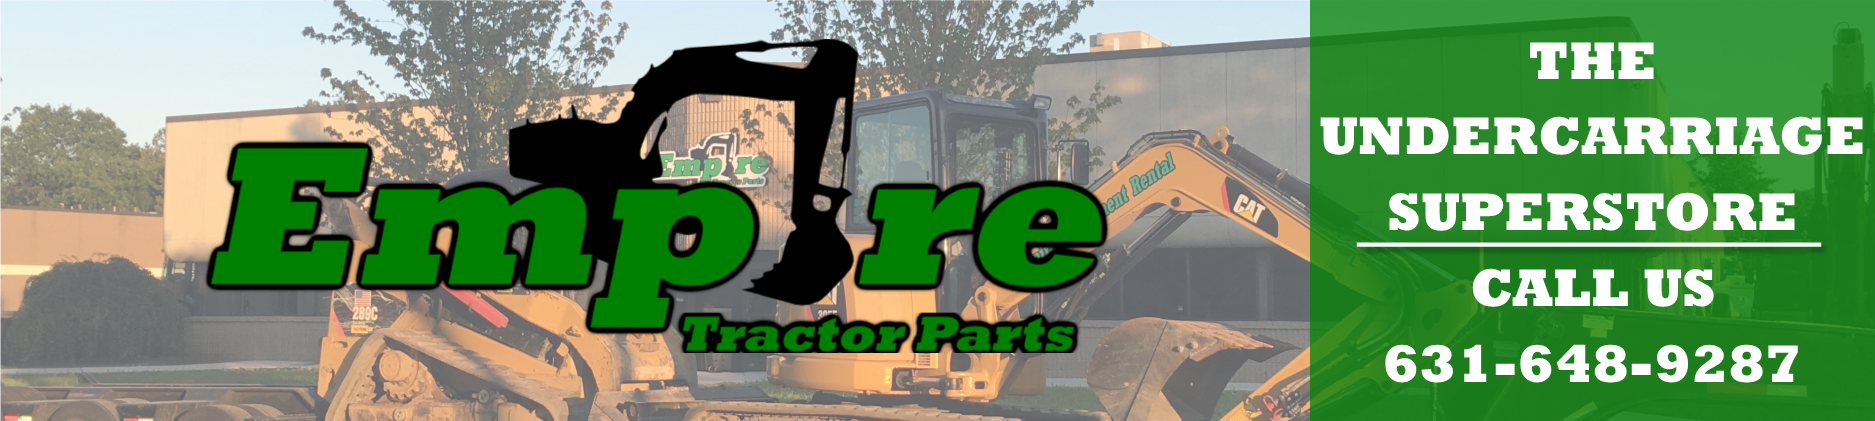 The Undercarriage Superstore - Track chains,rollers,idlers,sprockets